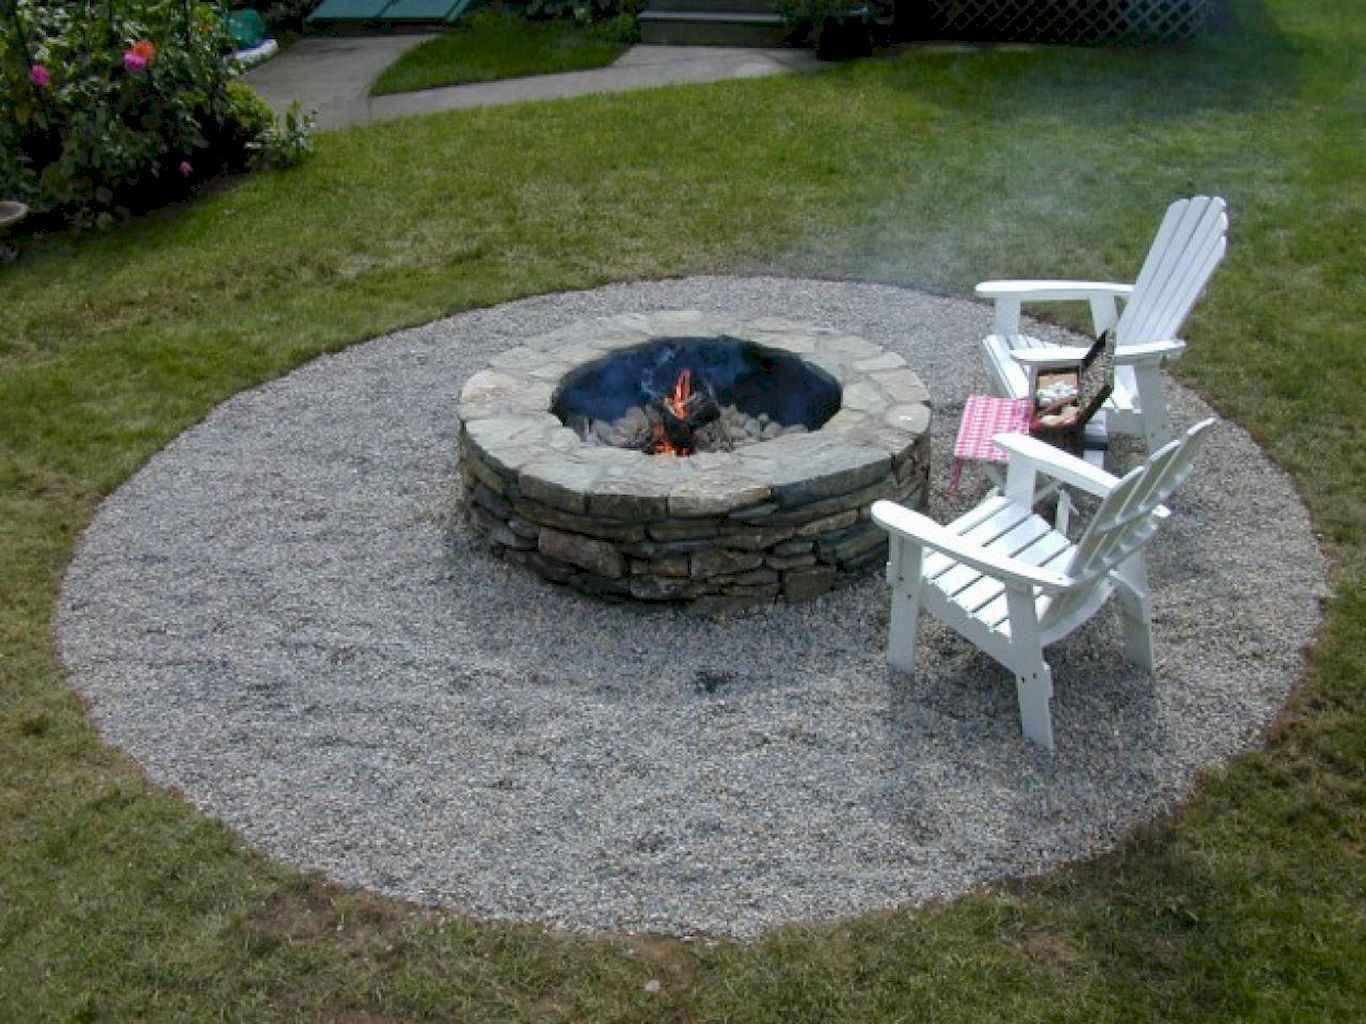 60 Beautiful Backyard Fire Pit Ideas Decoration And Remodel 9 throughout 14 Awesome Ways How to Improve Backyard Fire Pits Ideas